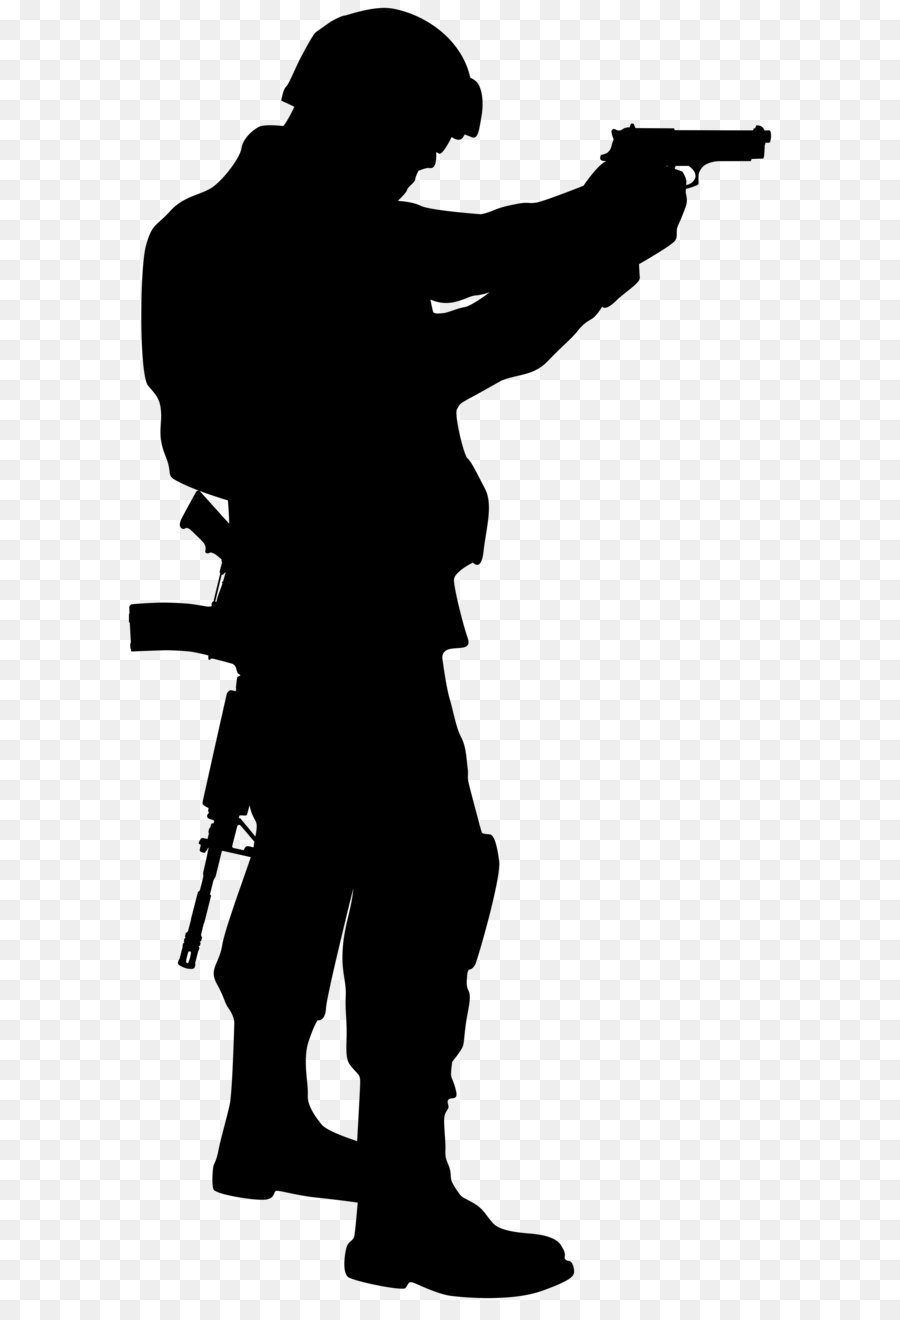 Rifle shooting sihouette standing clipart png royalty free download Soldier Silhouette png download - 3981*8000 - Free ... png royalty free download